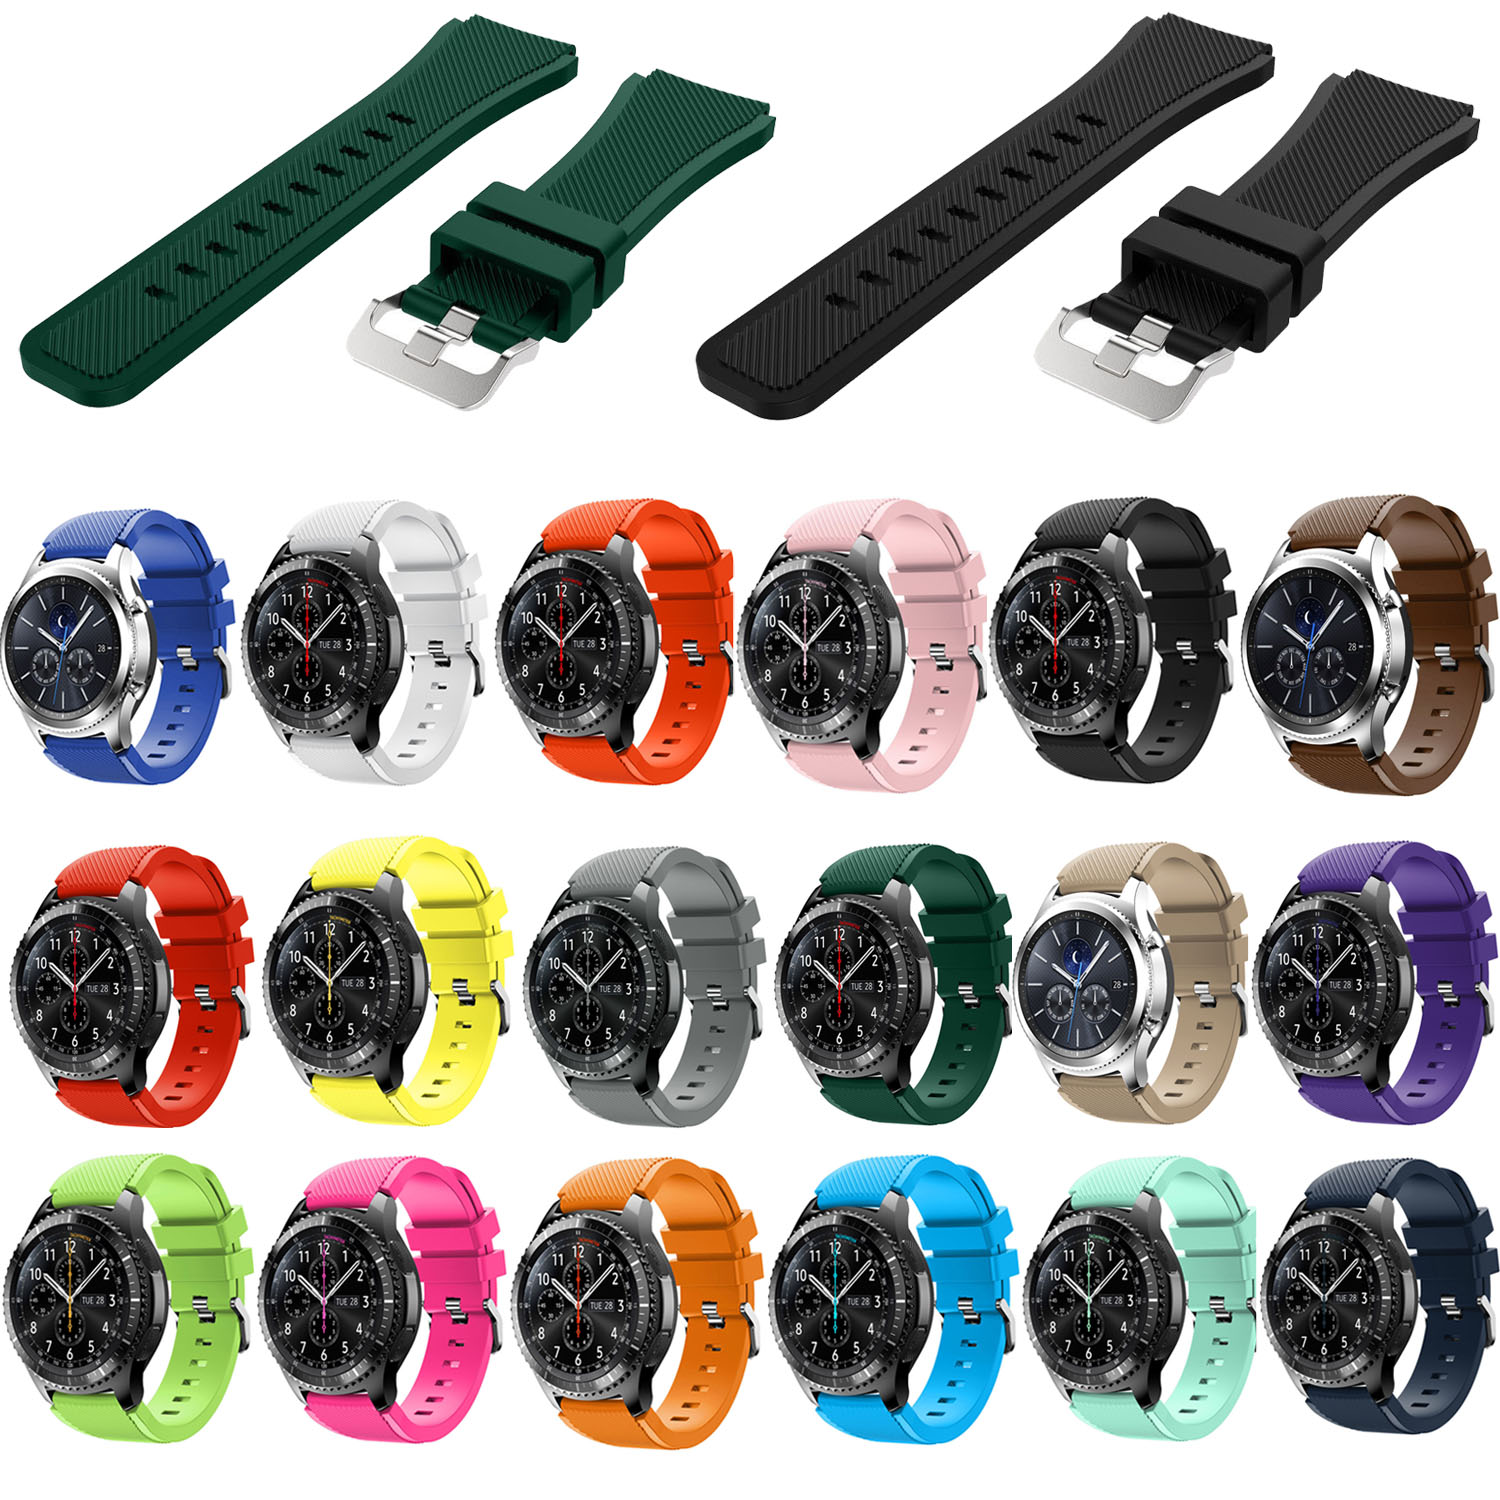 18 Colors Rubber Wrist Strap for Samsung Gear S3 Frontier Silicone Watch Band for Samsung Gear S3 Classic Bracelet Band 22mm 18 colors rubber wrist strap for samsung gear s3 frontier silicone watch band for samsung gear s3 classic bracelet band 22mm